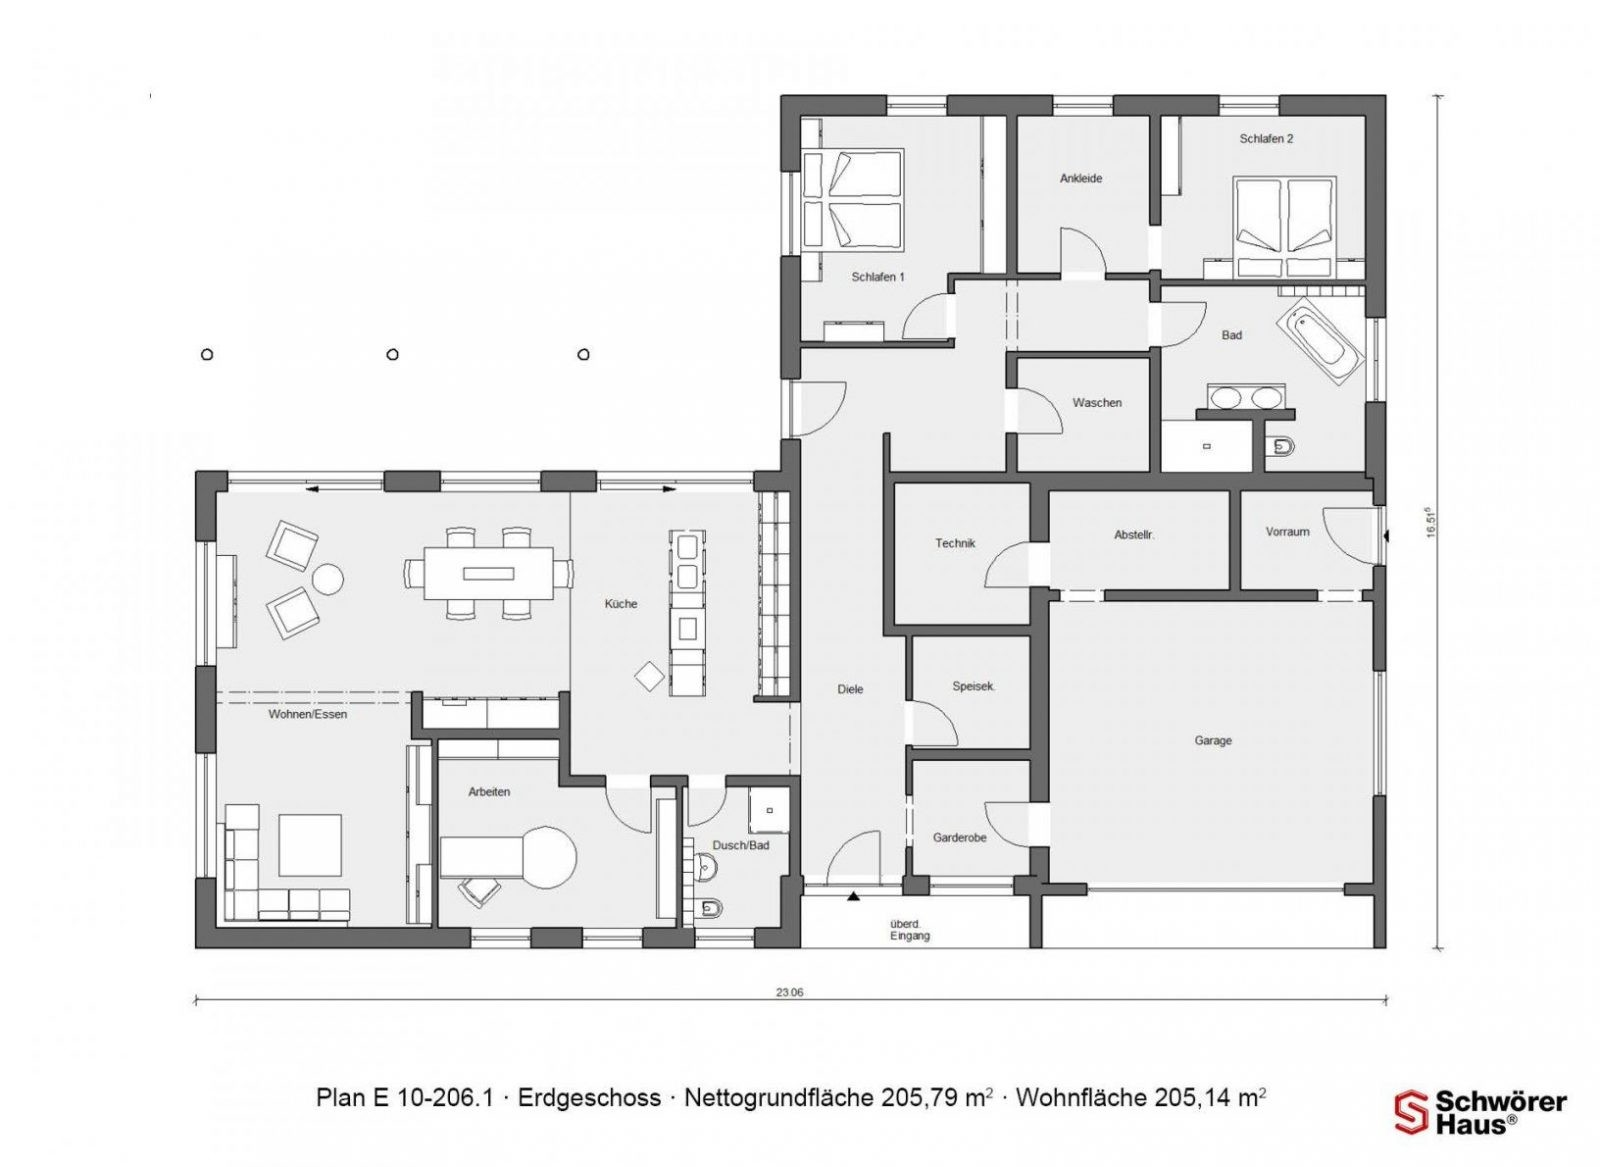 Bungalow In Lform  Bungalow And House von Grundriss Bungalow L Form Photo